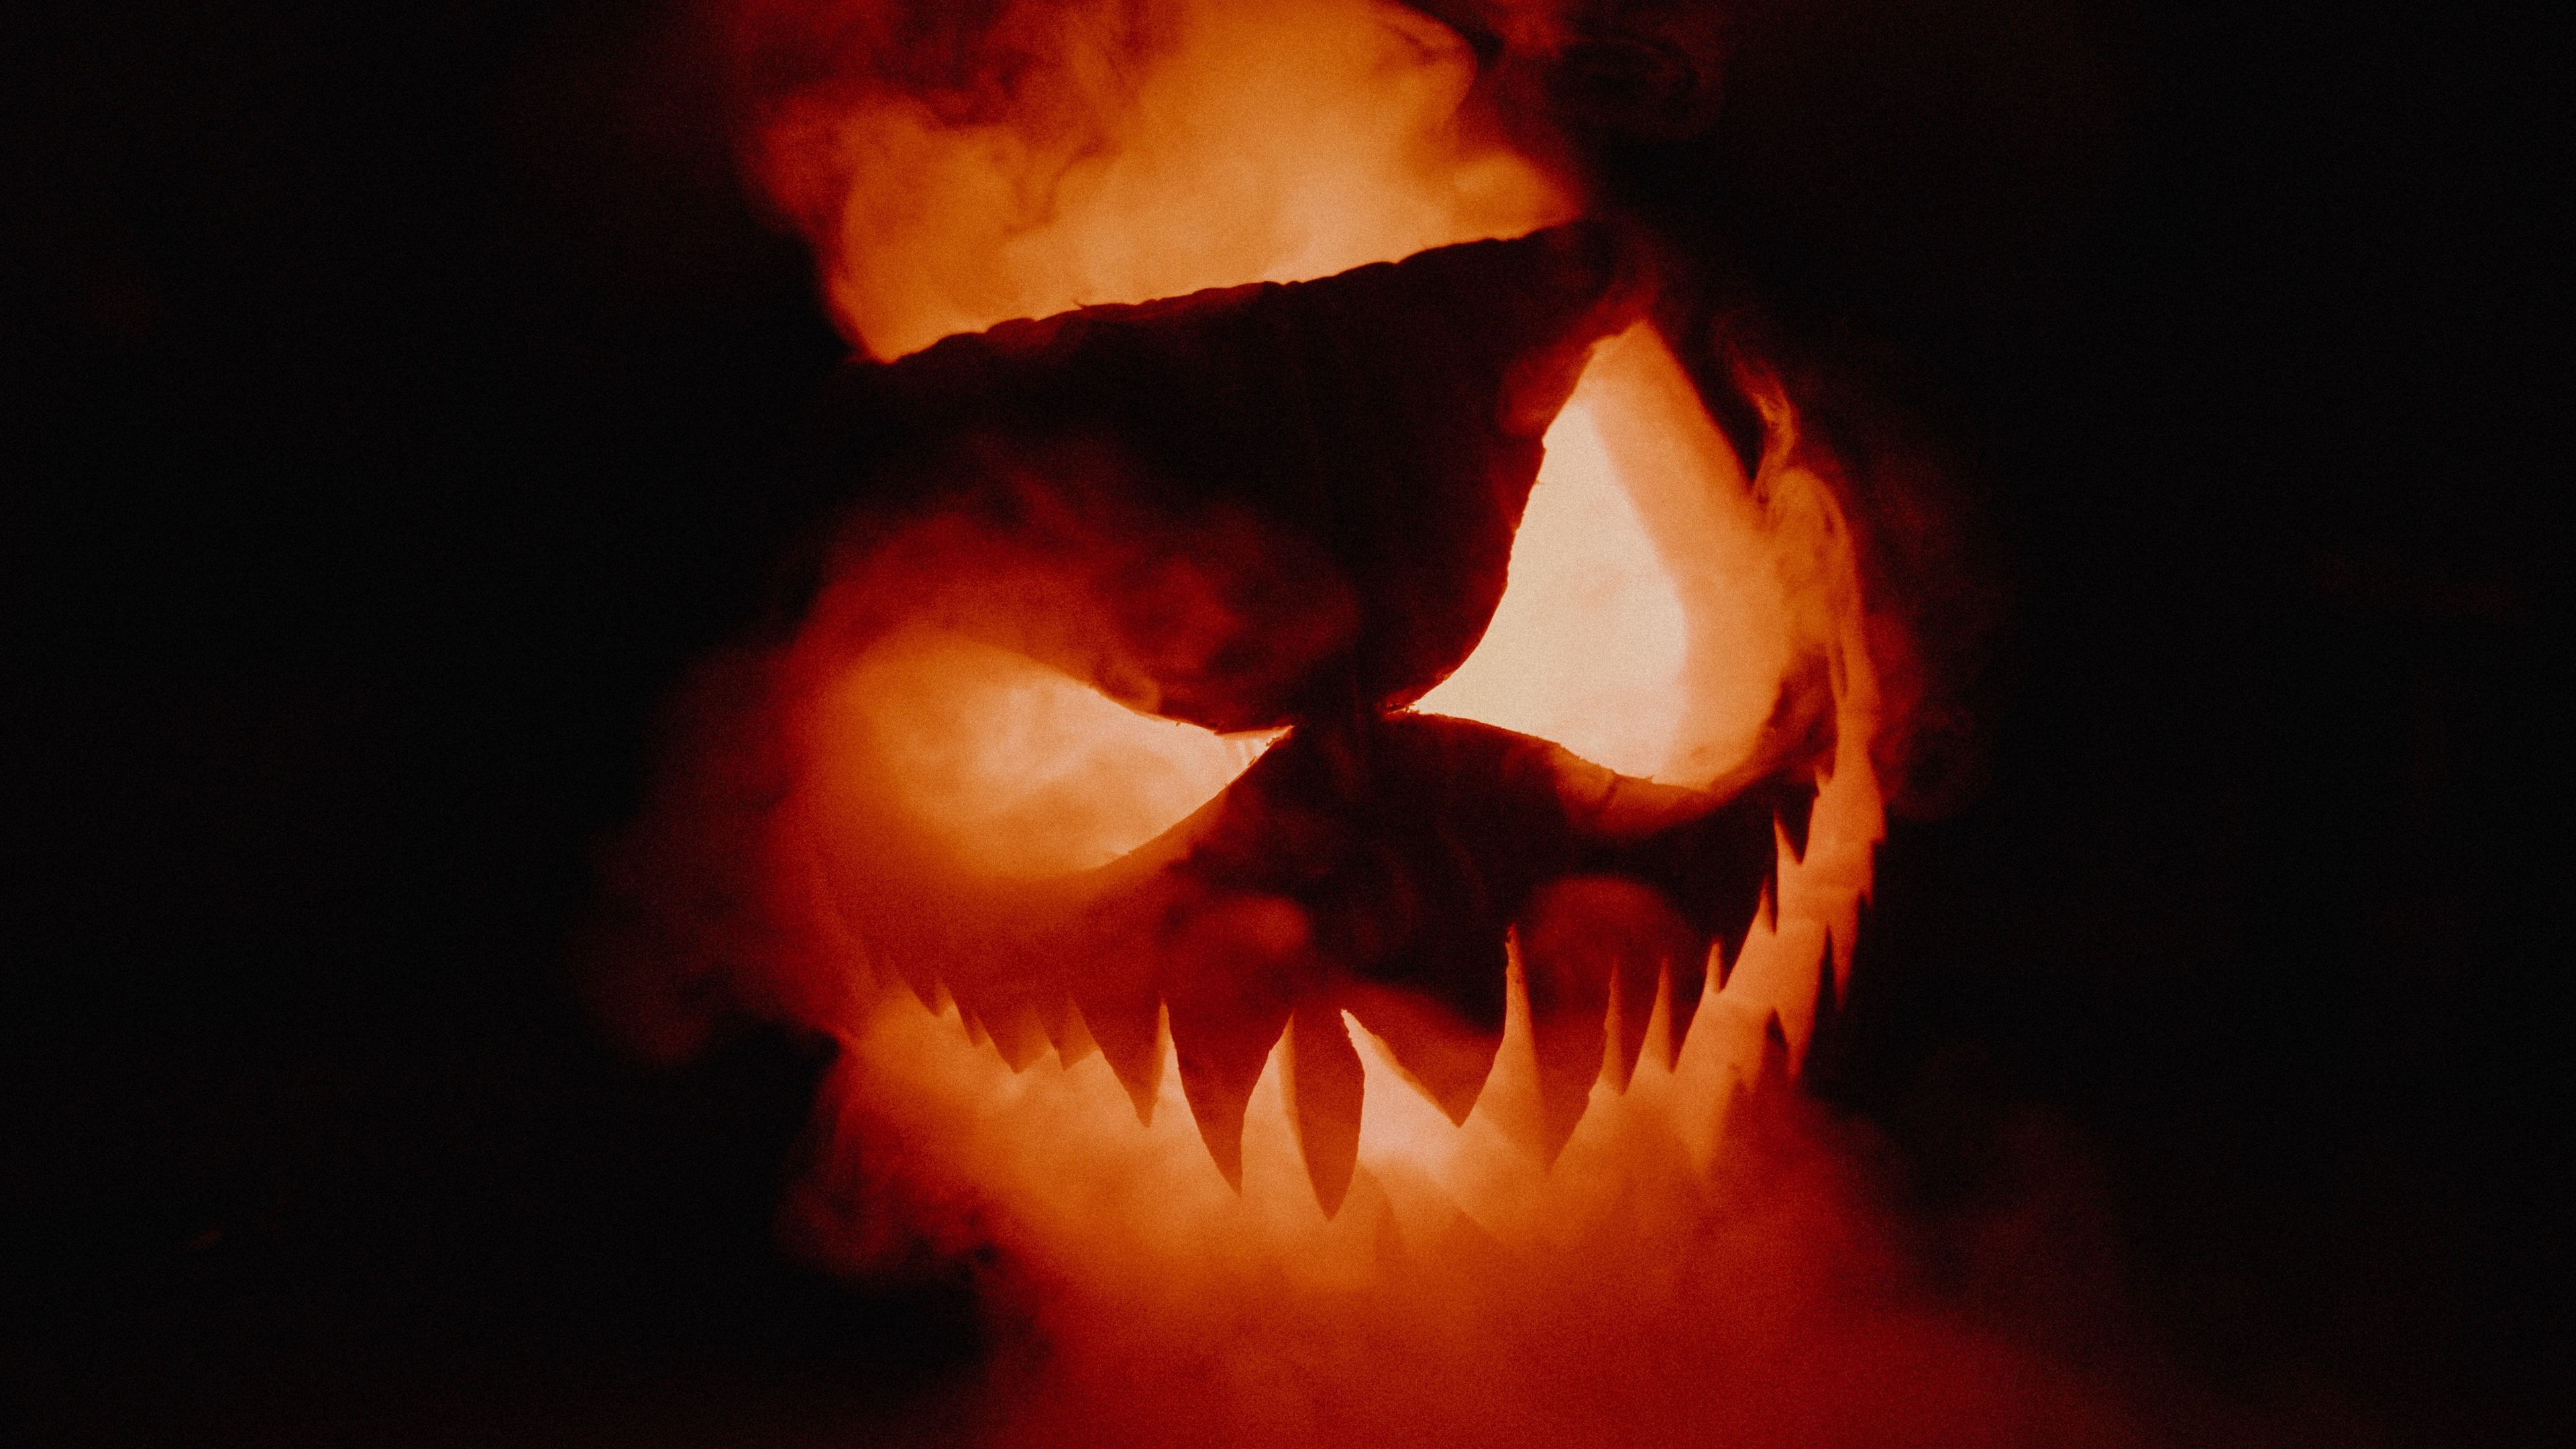 Wallpaper Of Halloween Jack O Lantern Smoke Background Hd Image